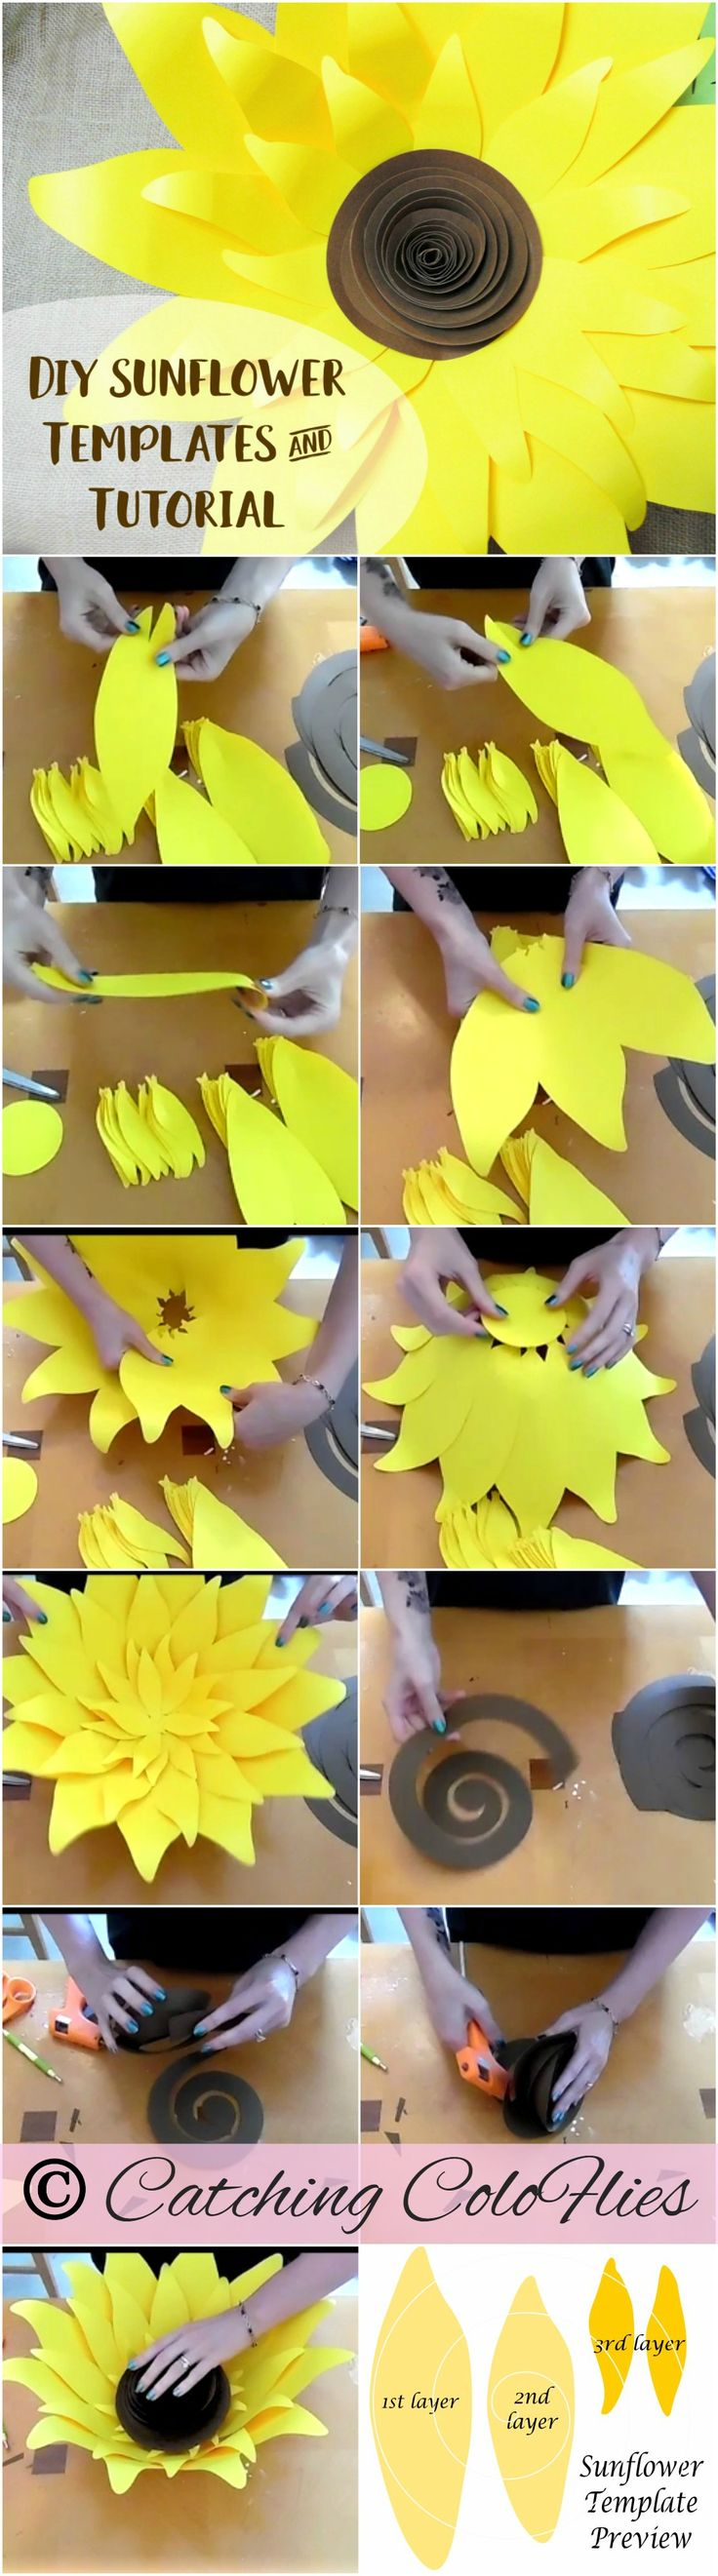 111 best Paper flora images on Pinterest | Fabric flowers, Flower ...